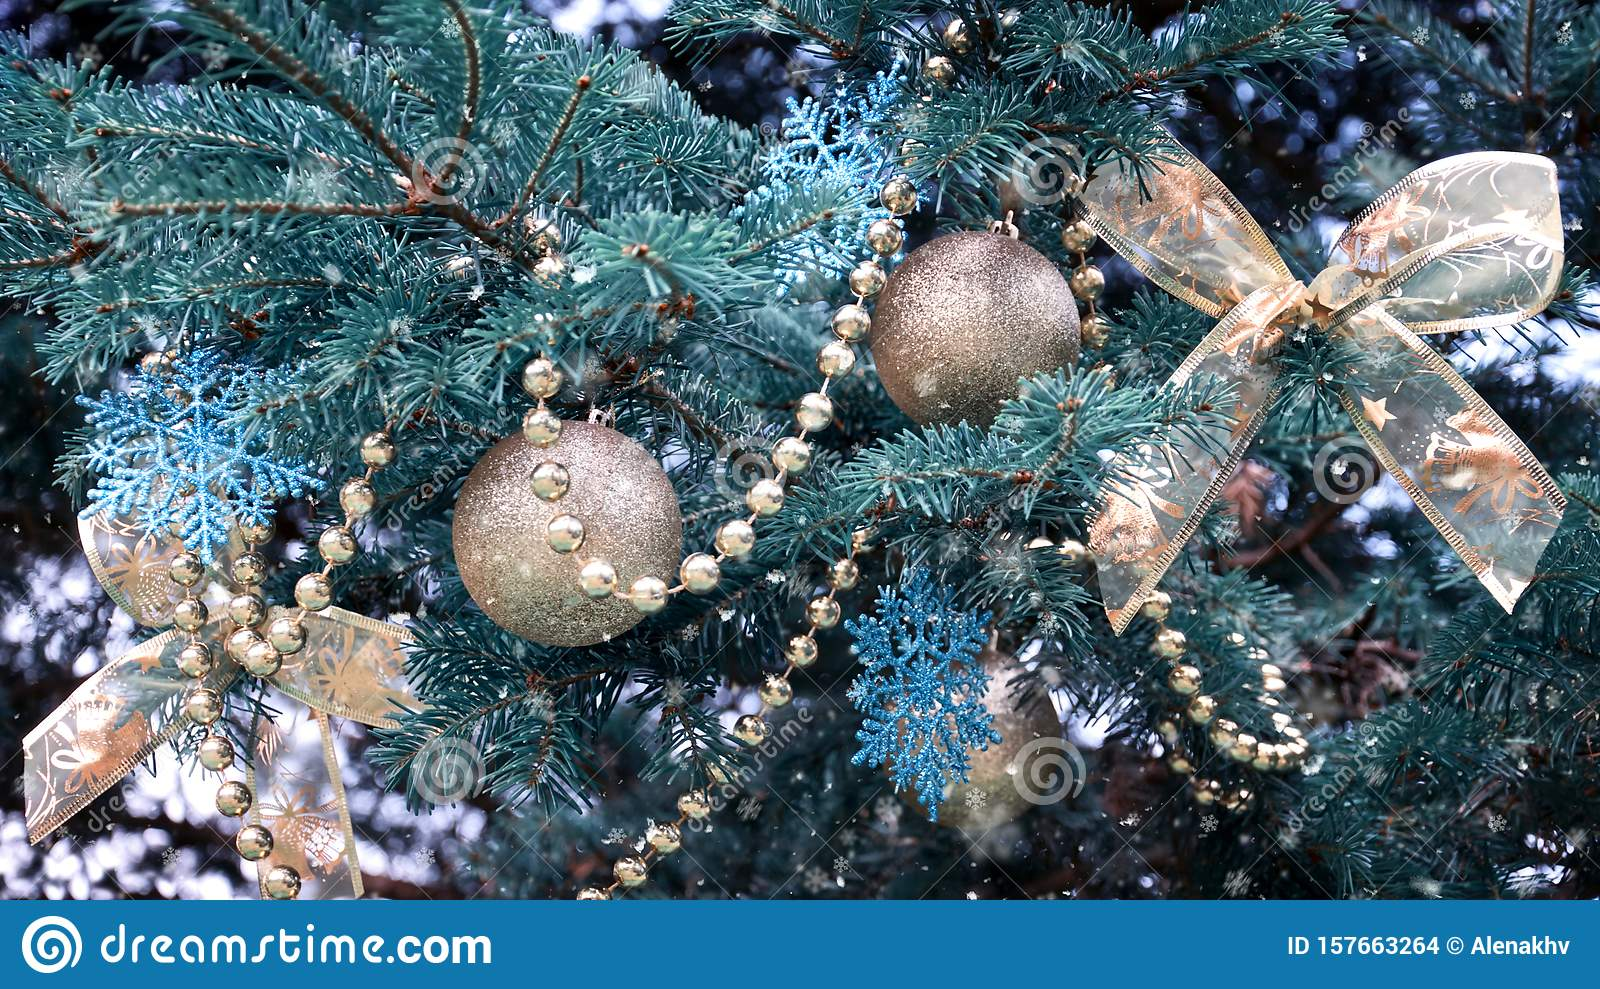 Close Up Of A Christmas Tree With Rose Gold And Turquoise Decorations Balls Snowflakes Bows Beads On A Blurry Background Stock Photo Image Of Gold Ball 157663264